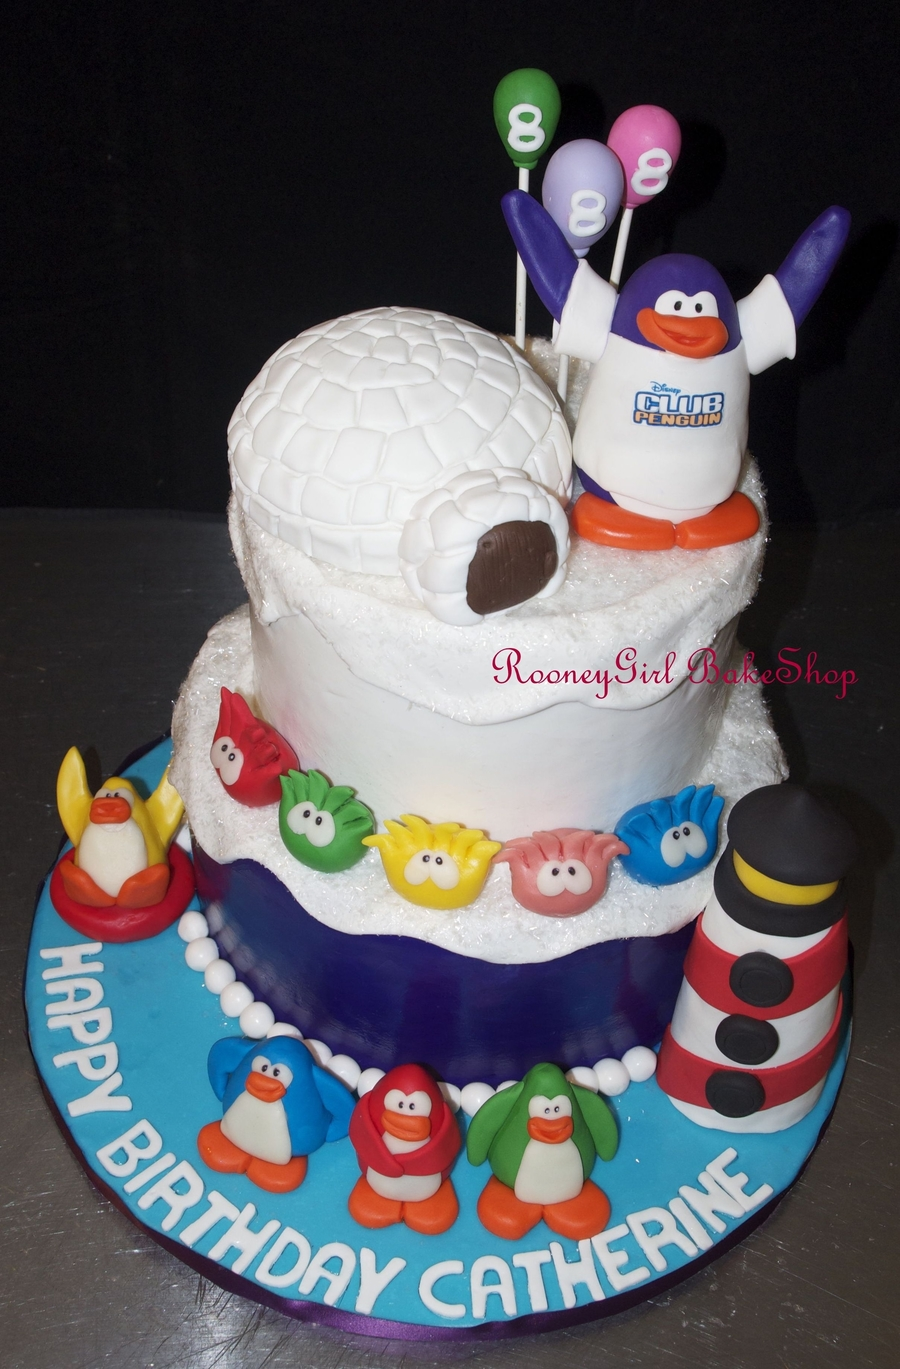 Club Penguin Birthday Cake on Cake Central